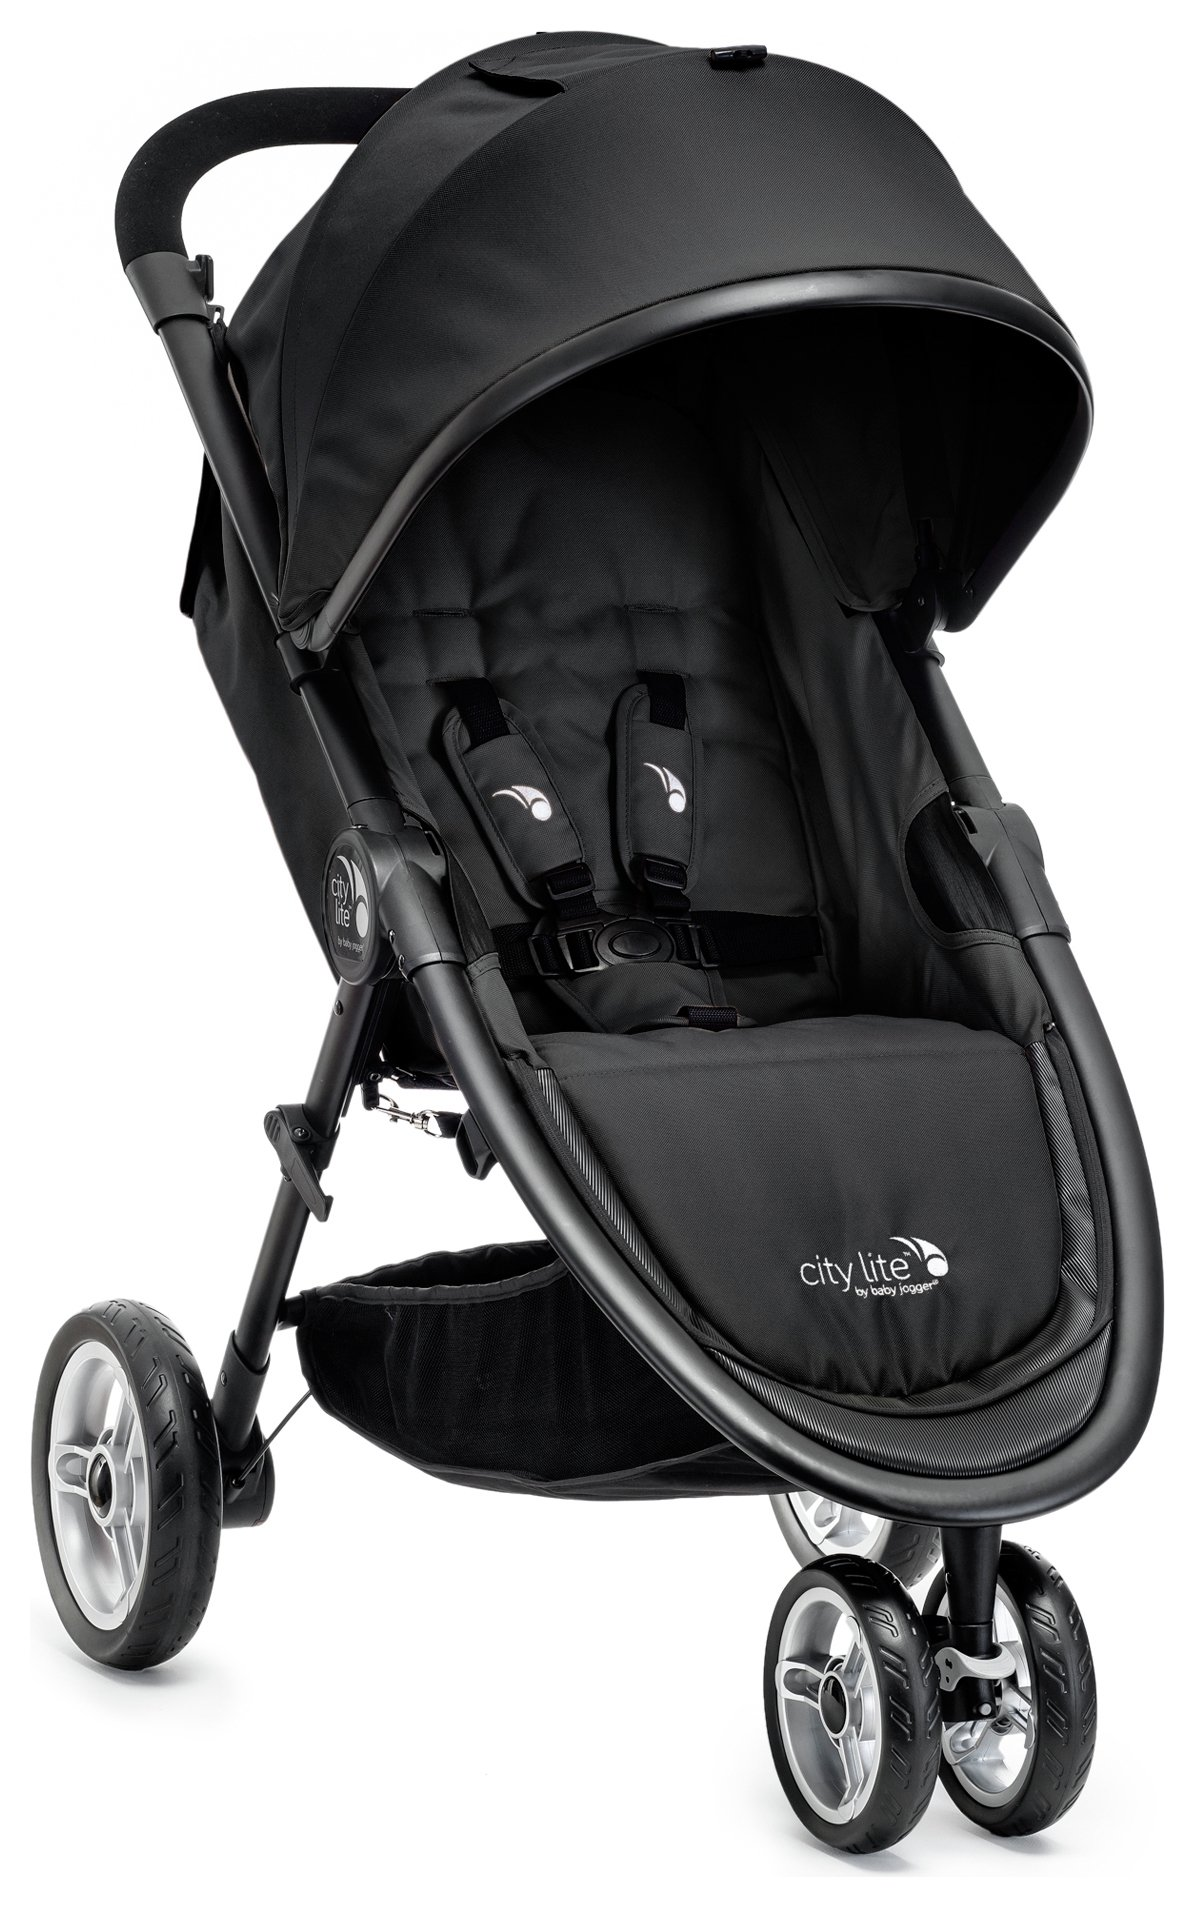 Image of Baby Jogger City Lite Single Stroller - Black.